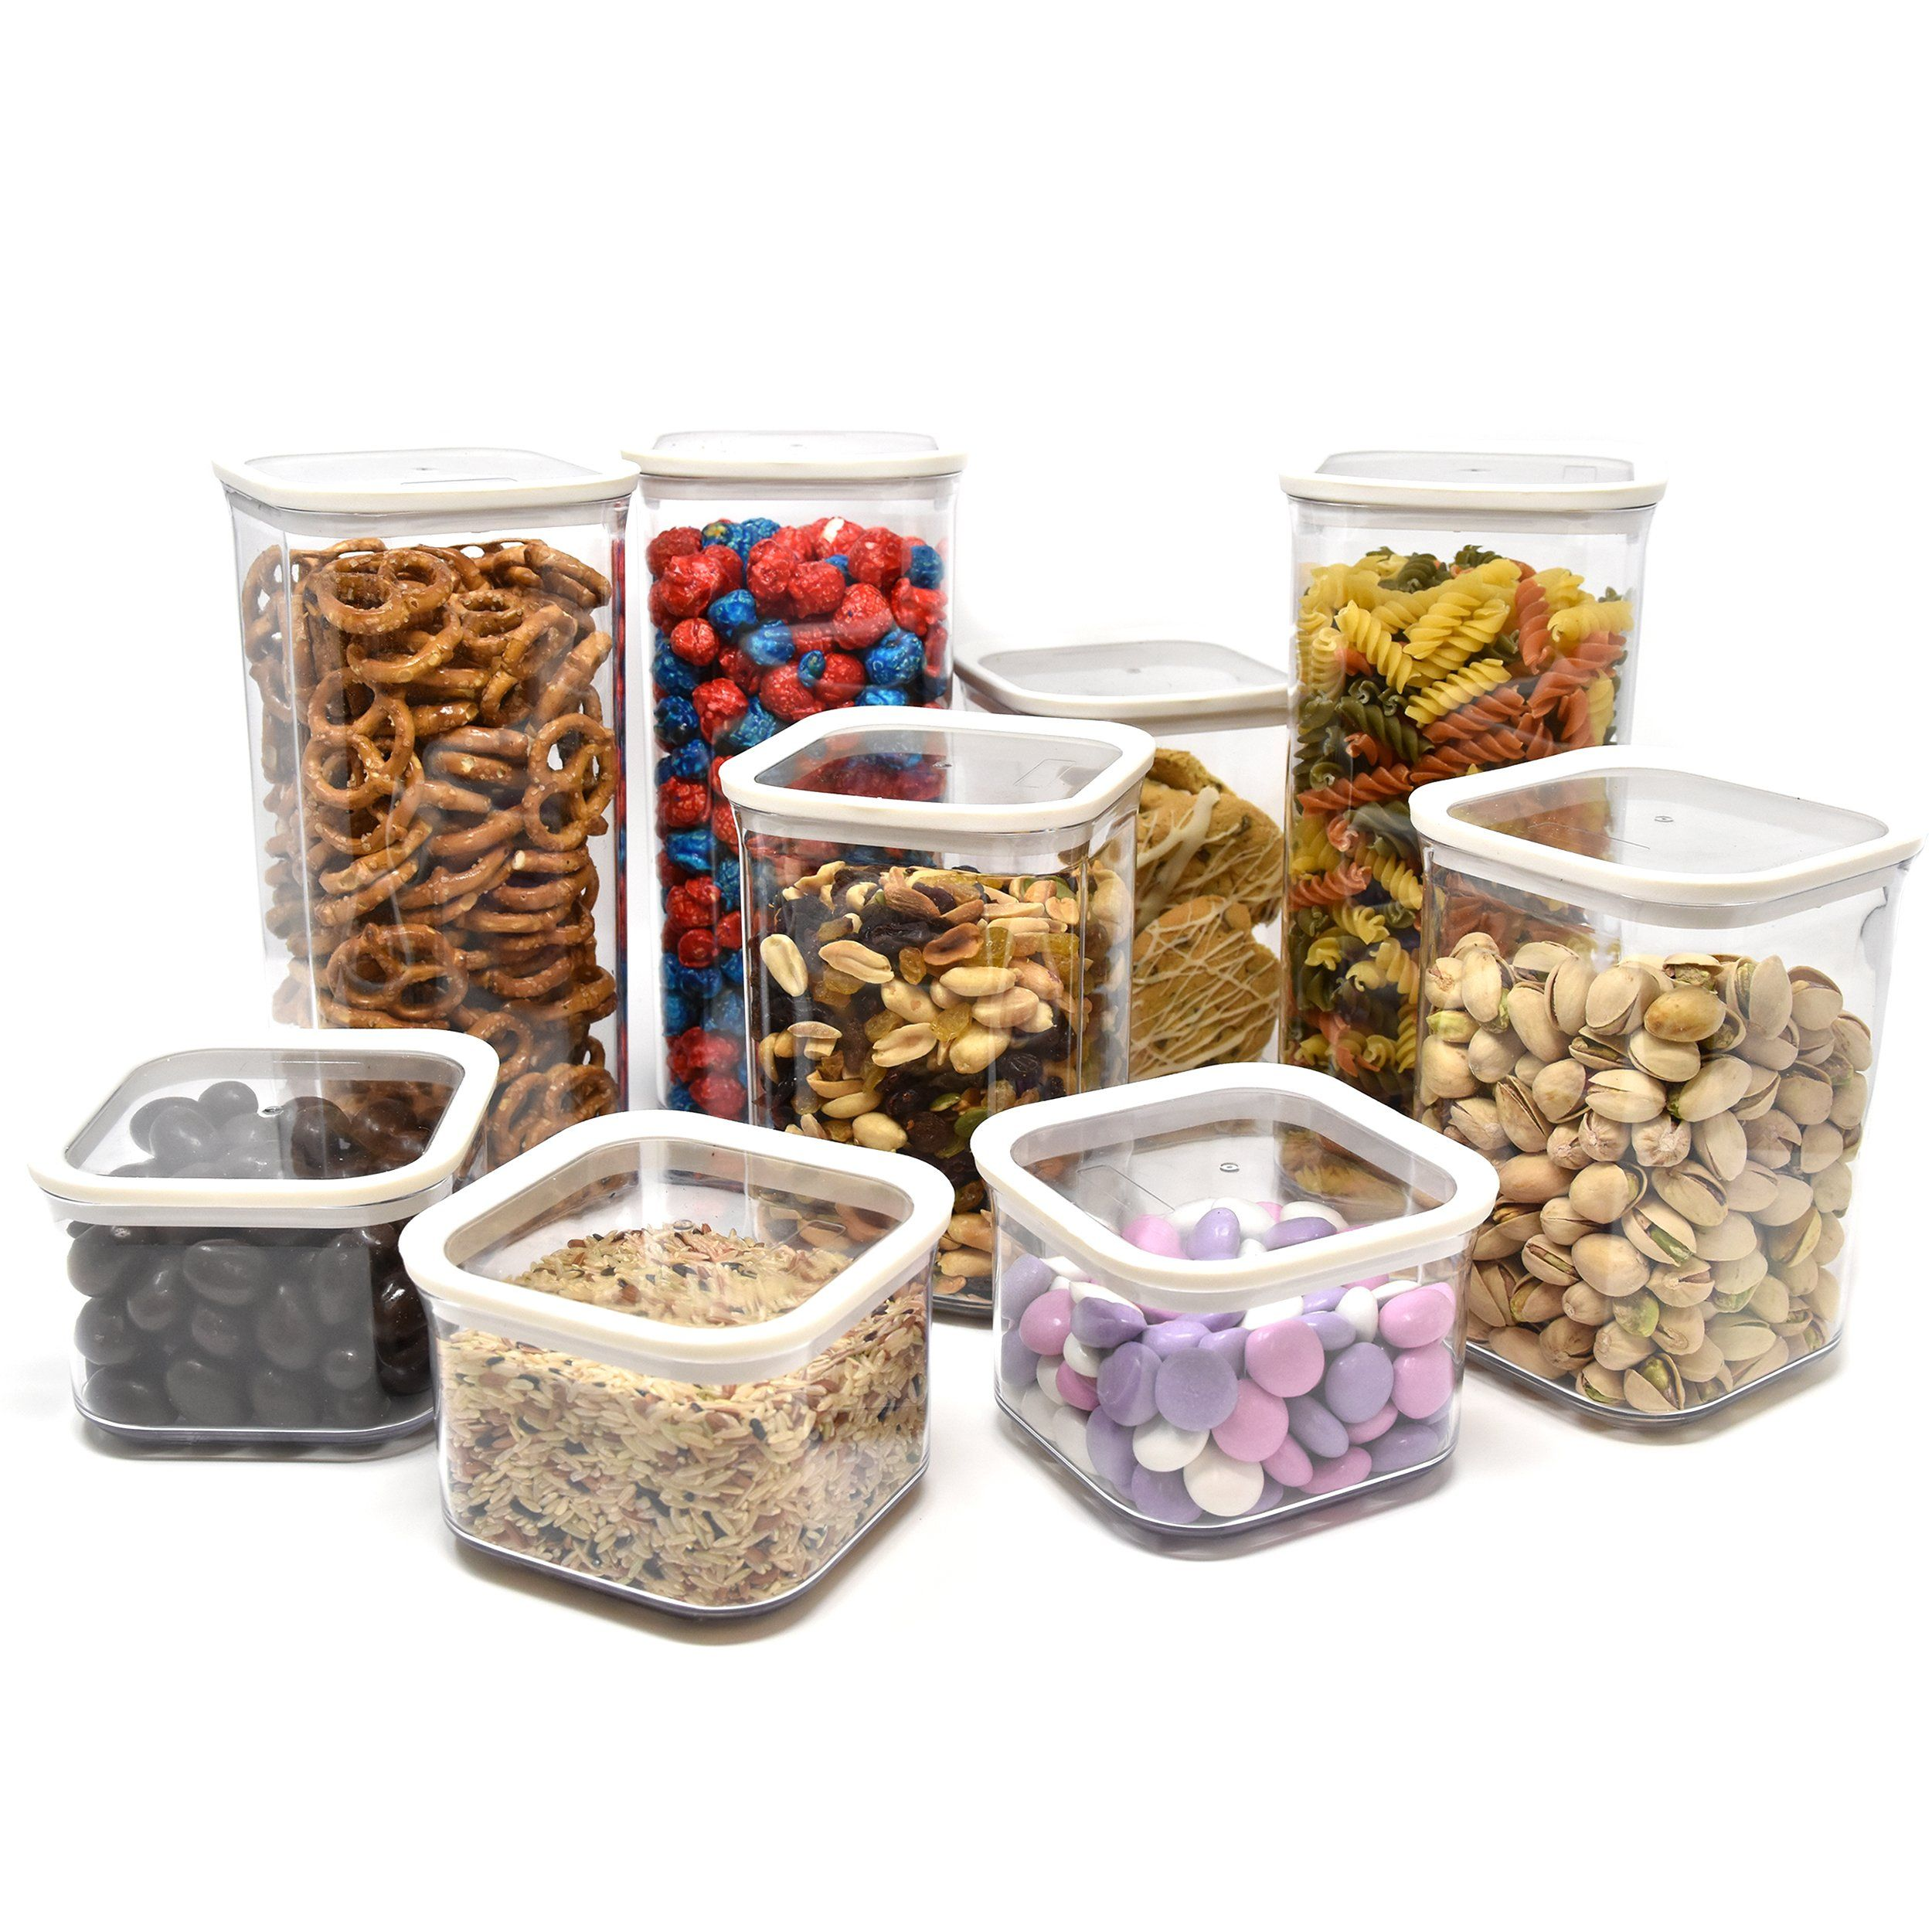 Airtight Dry Food Storage Container Set Food Saver Clear Plastic Airtight  Containers And Lids Stackable Space Saver Will Keep Your Food Fresh And  Cabinet ...